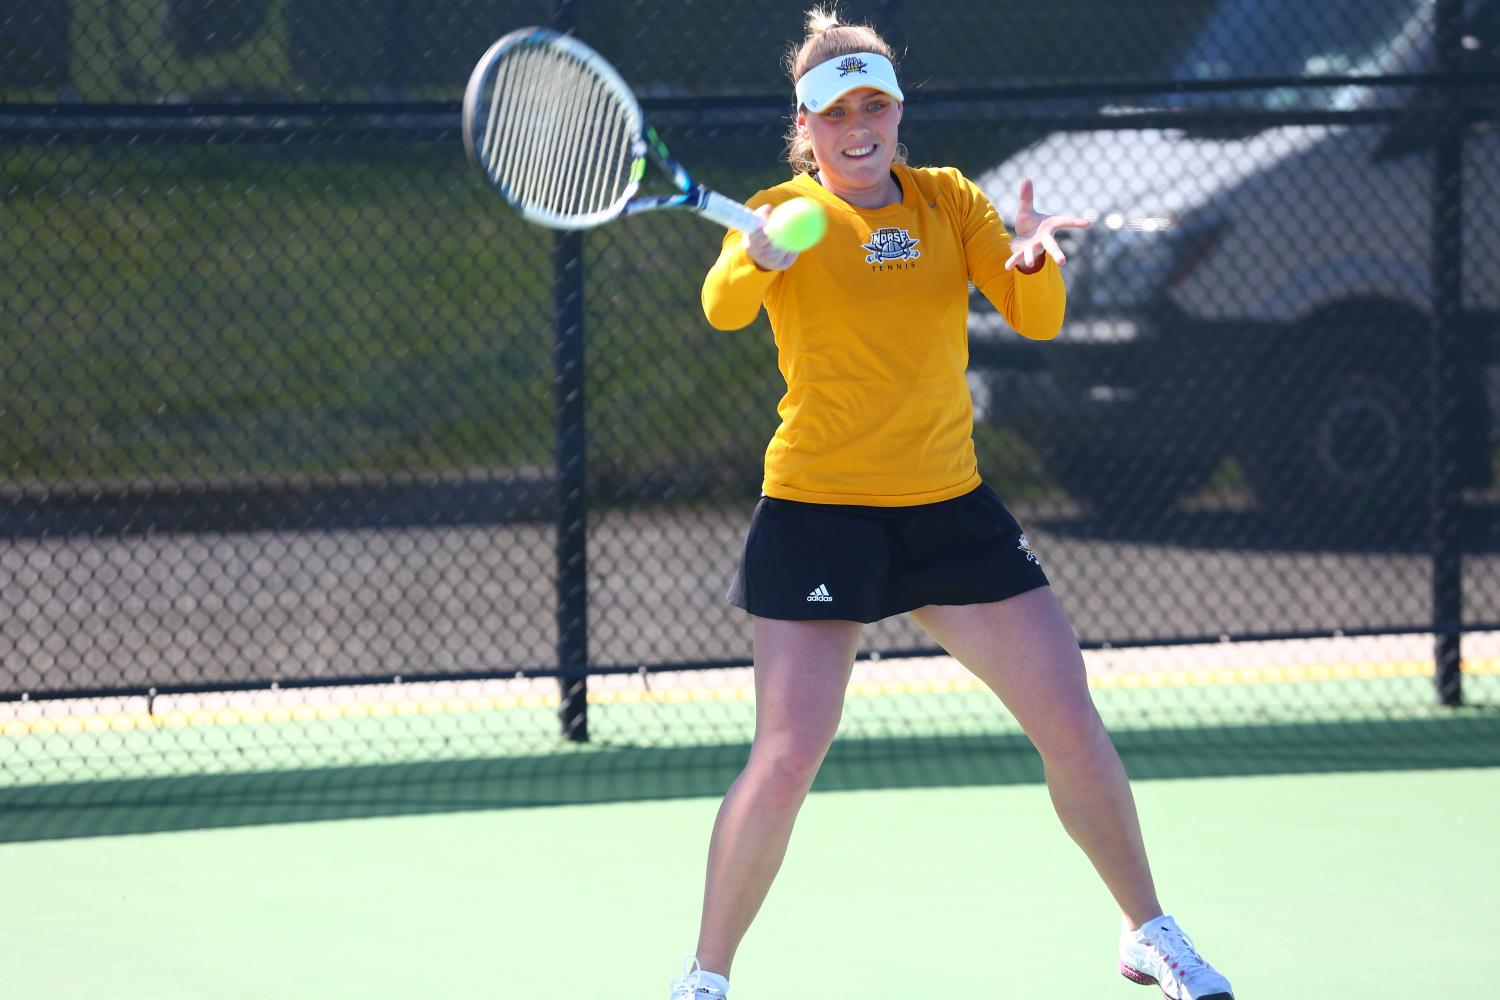 Margita Sunjic was named Horizon League tennis player of the year and Horizon League freshman of the year.